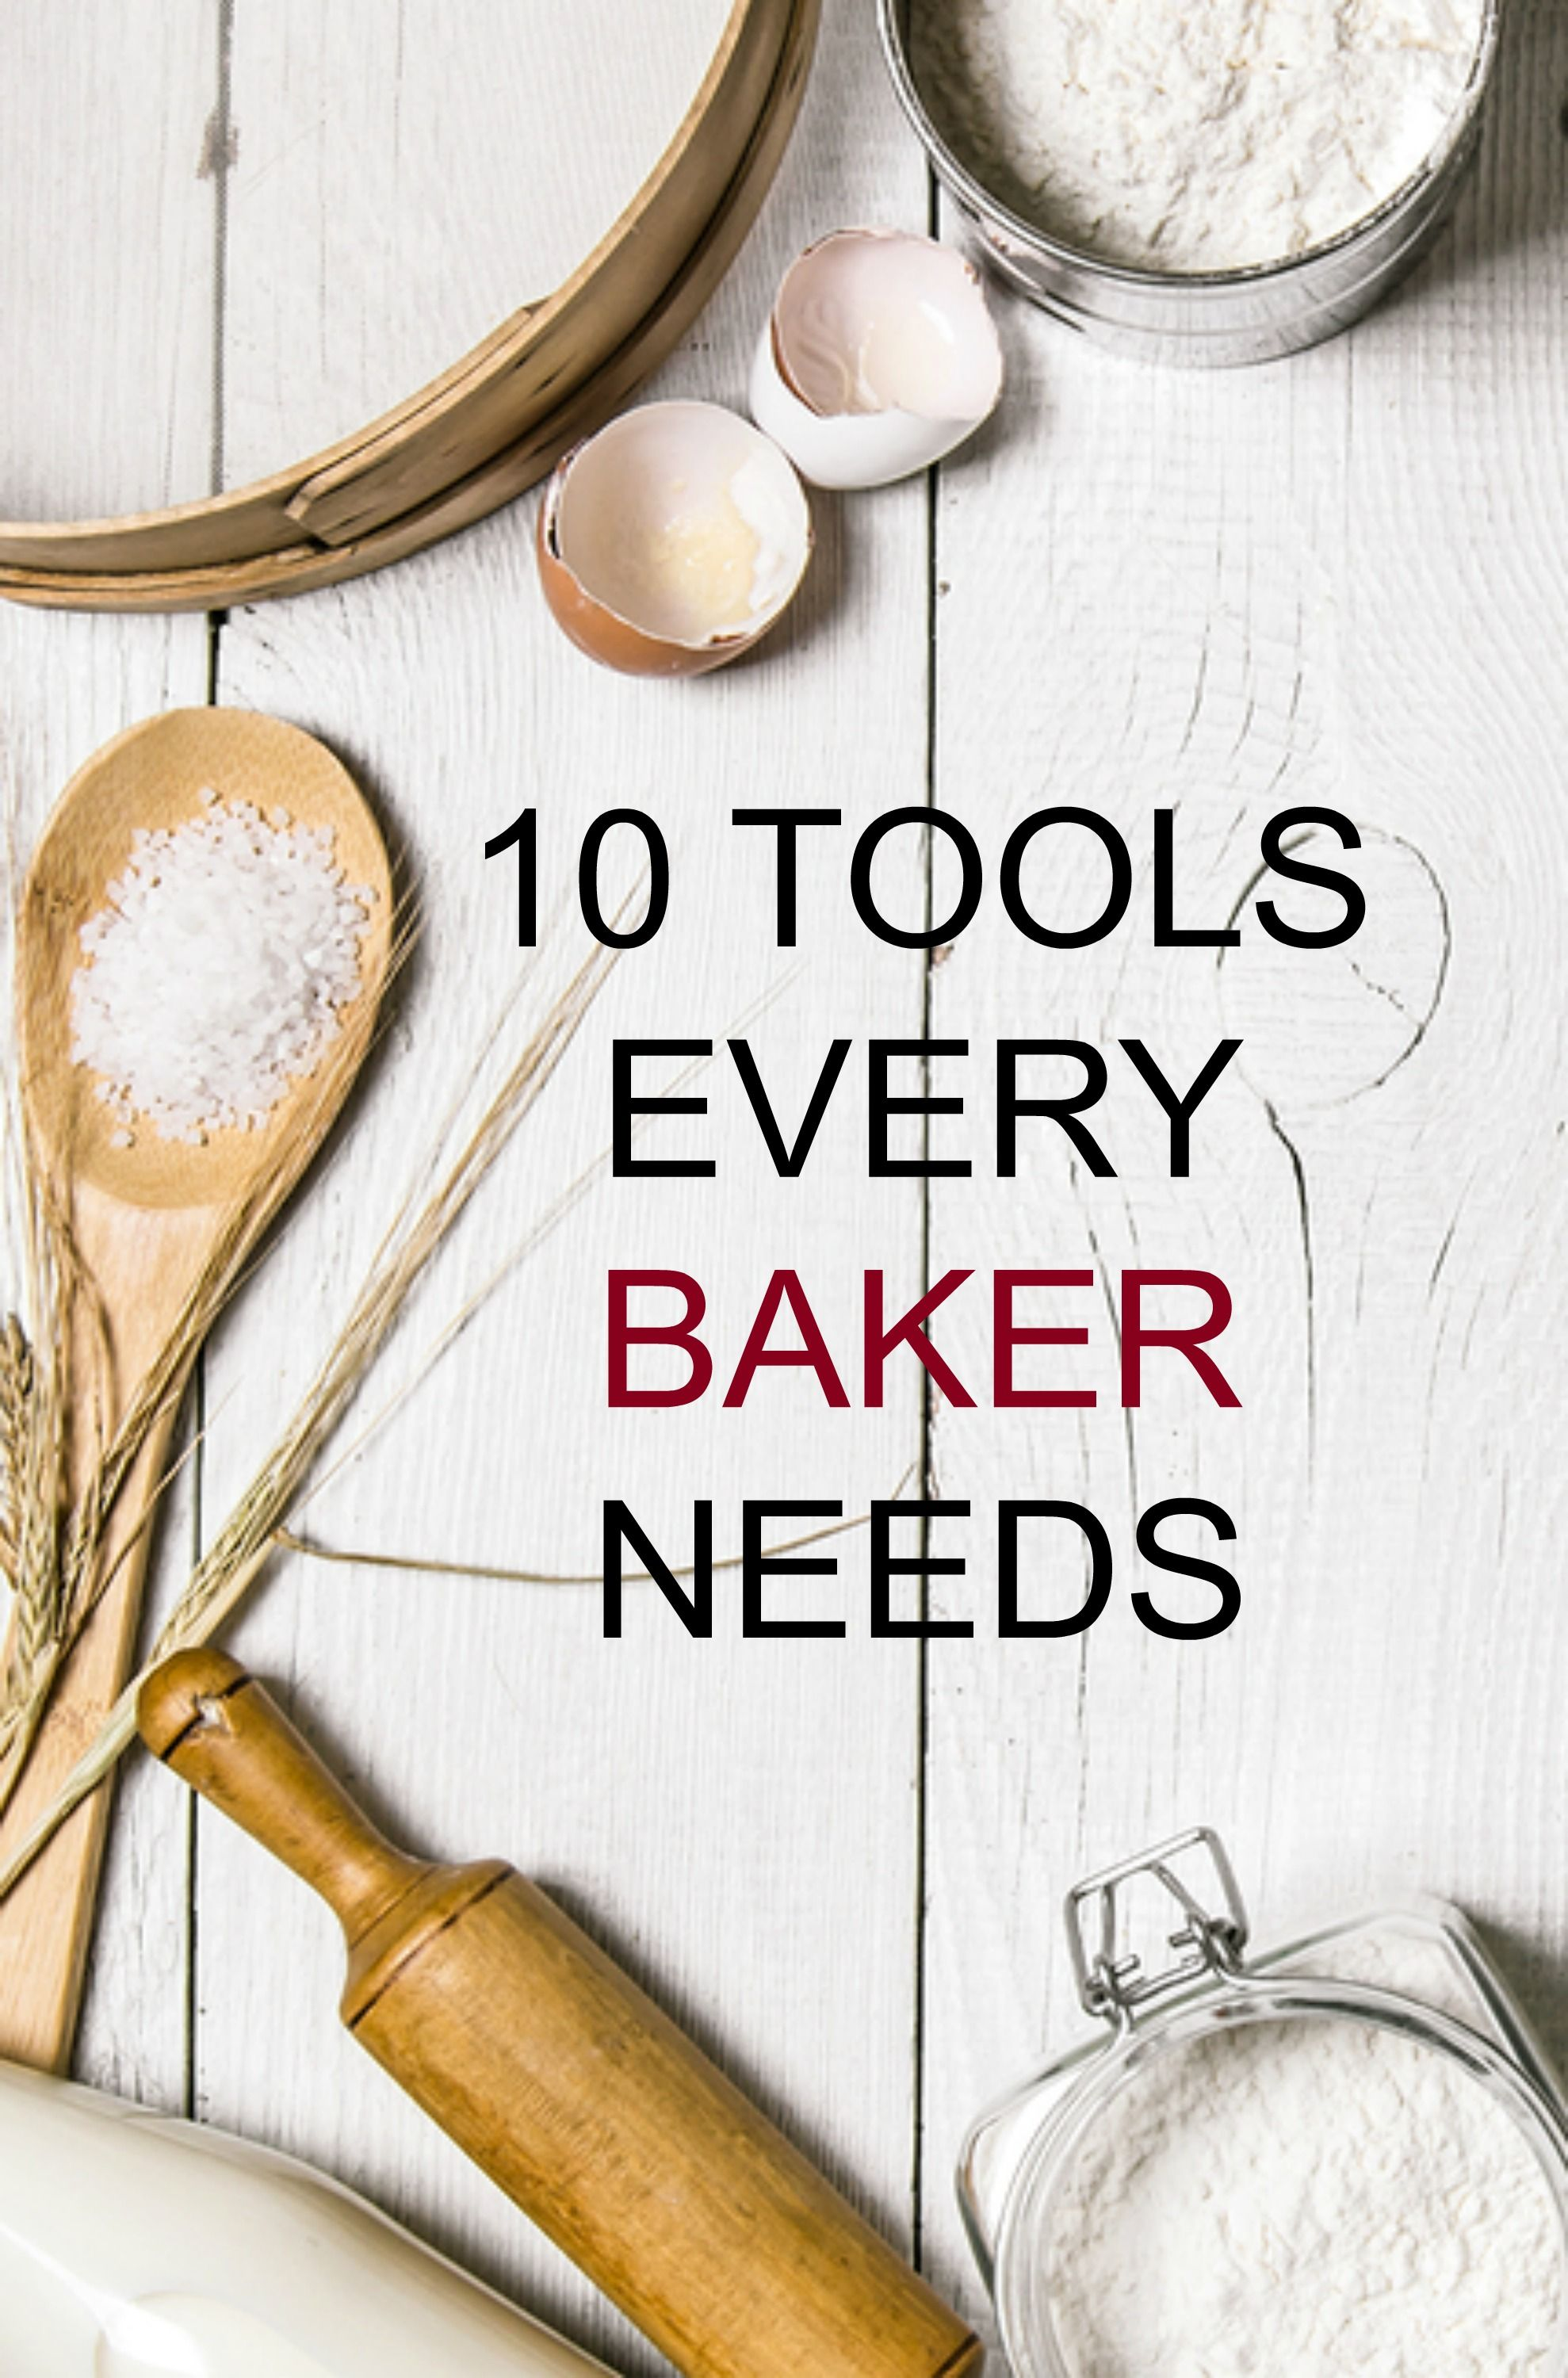 10 TOOLS EVERY BAKER NEEDS | Meal planning binder, Bakery supplies ...